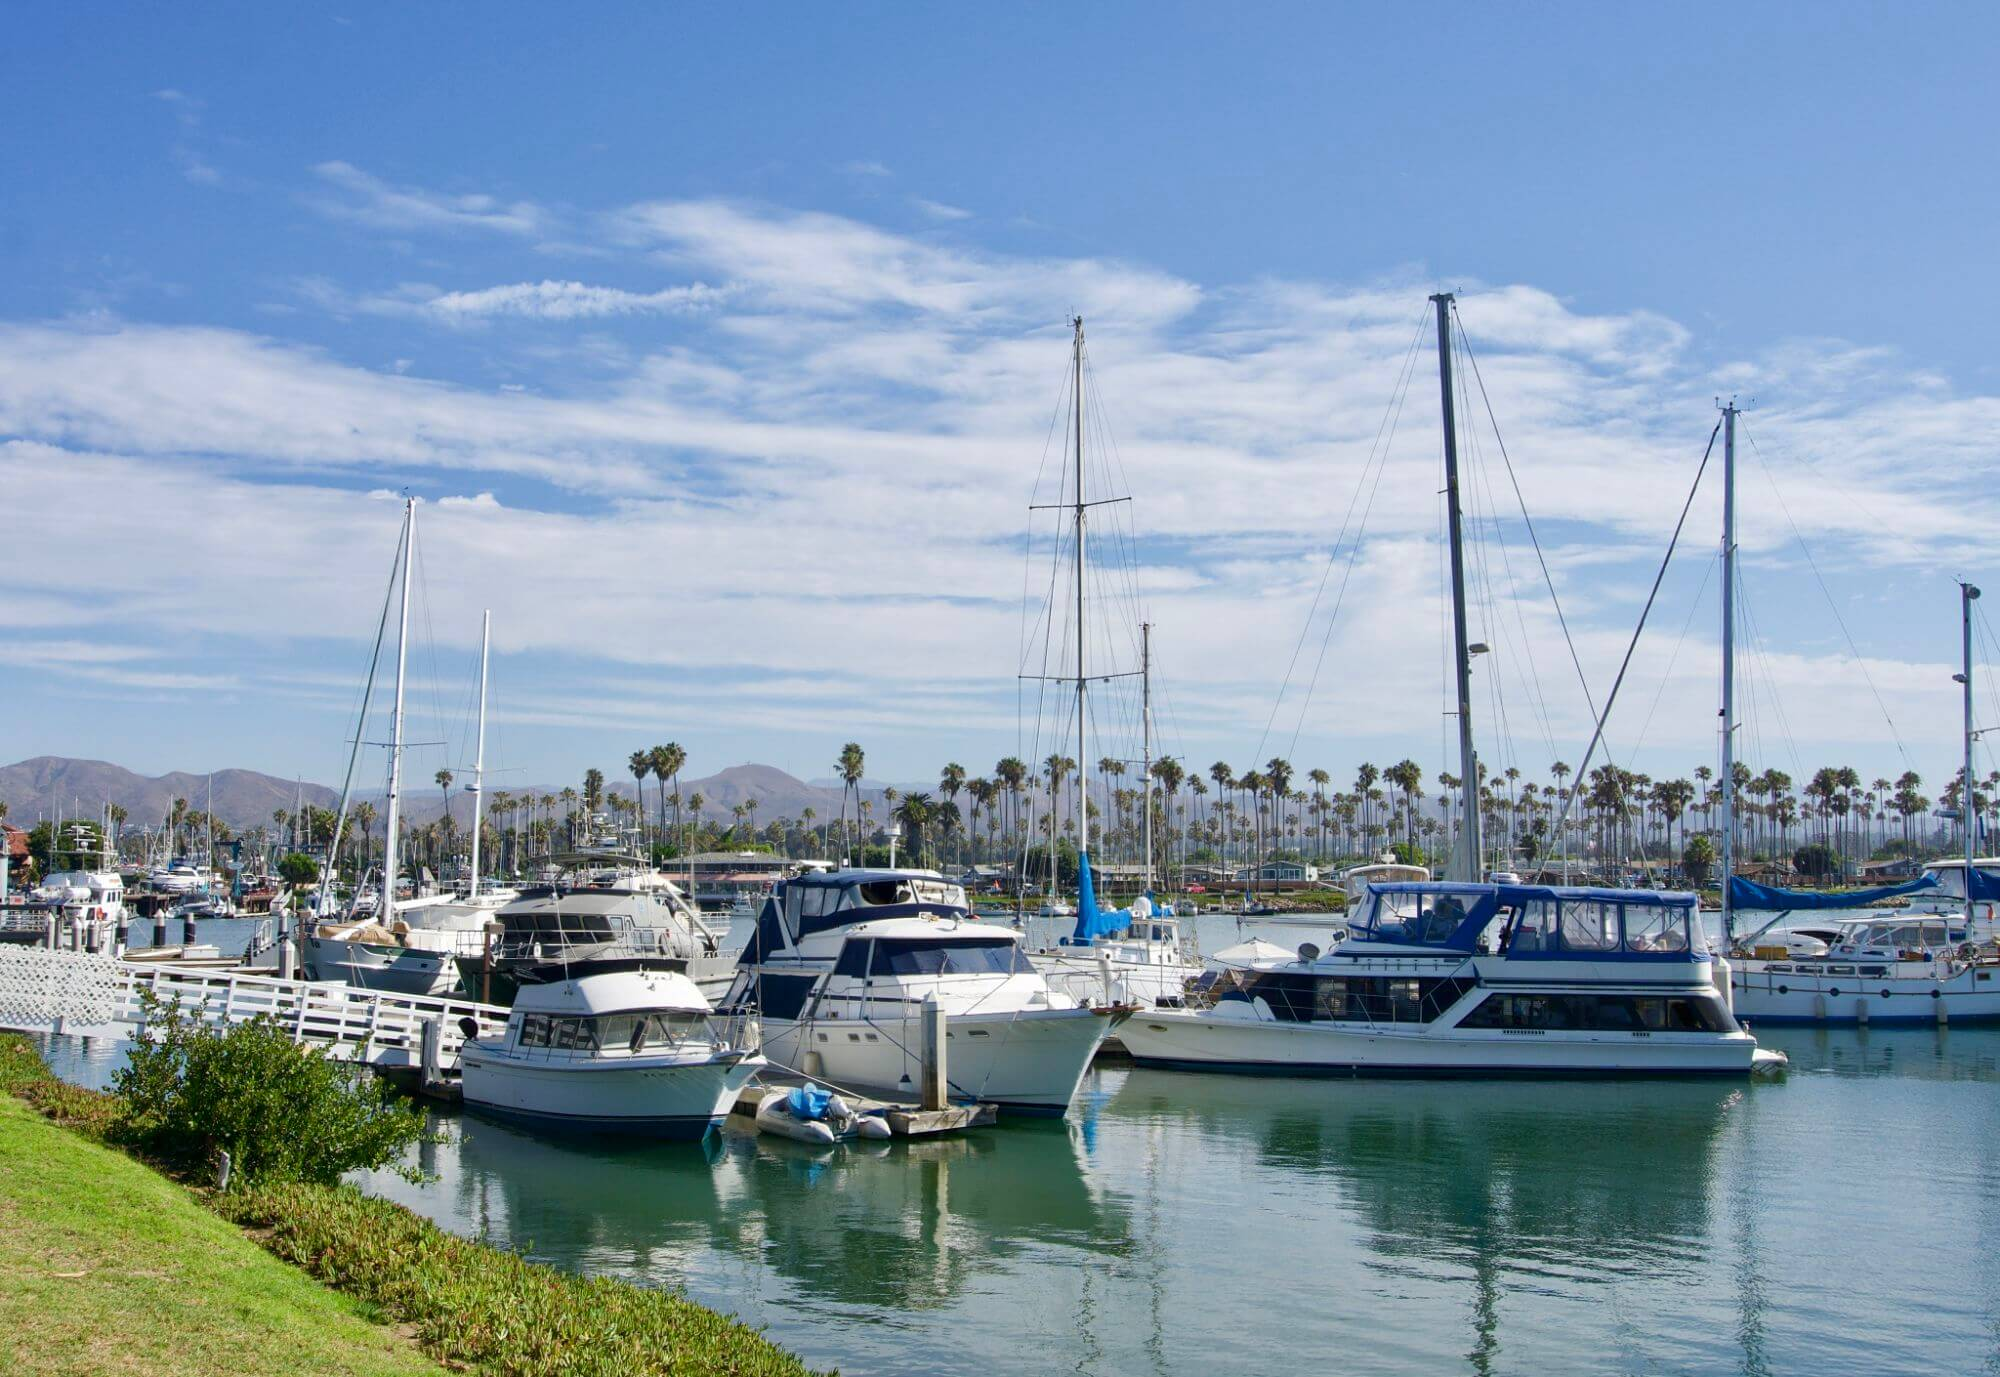 Boats in Ventura Harbor, California